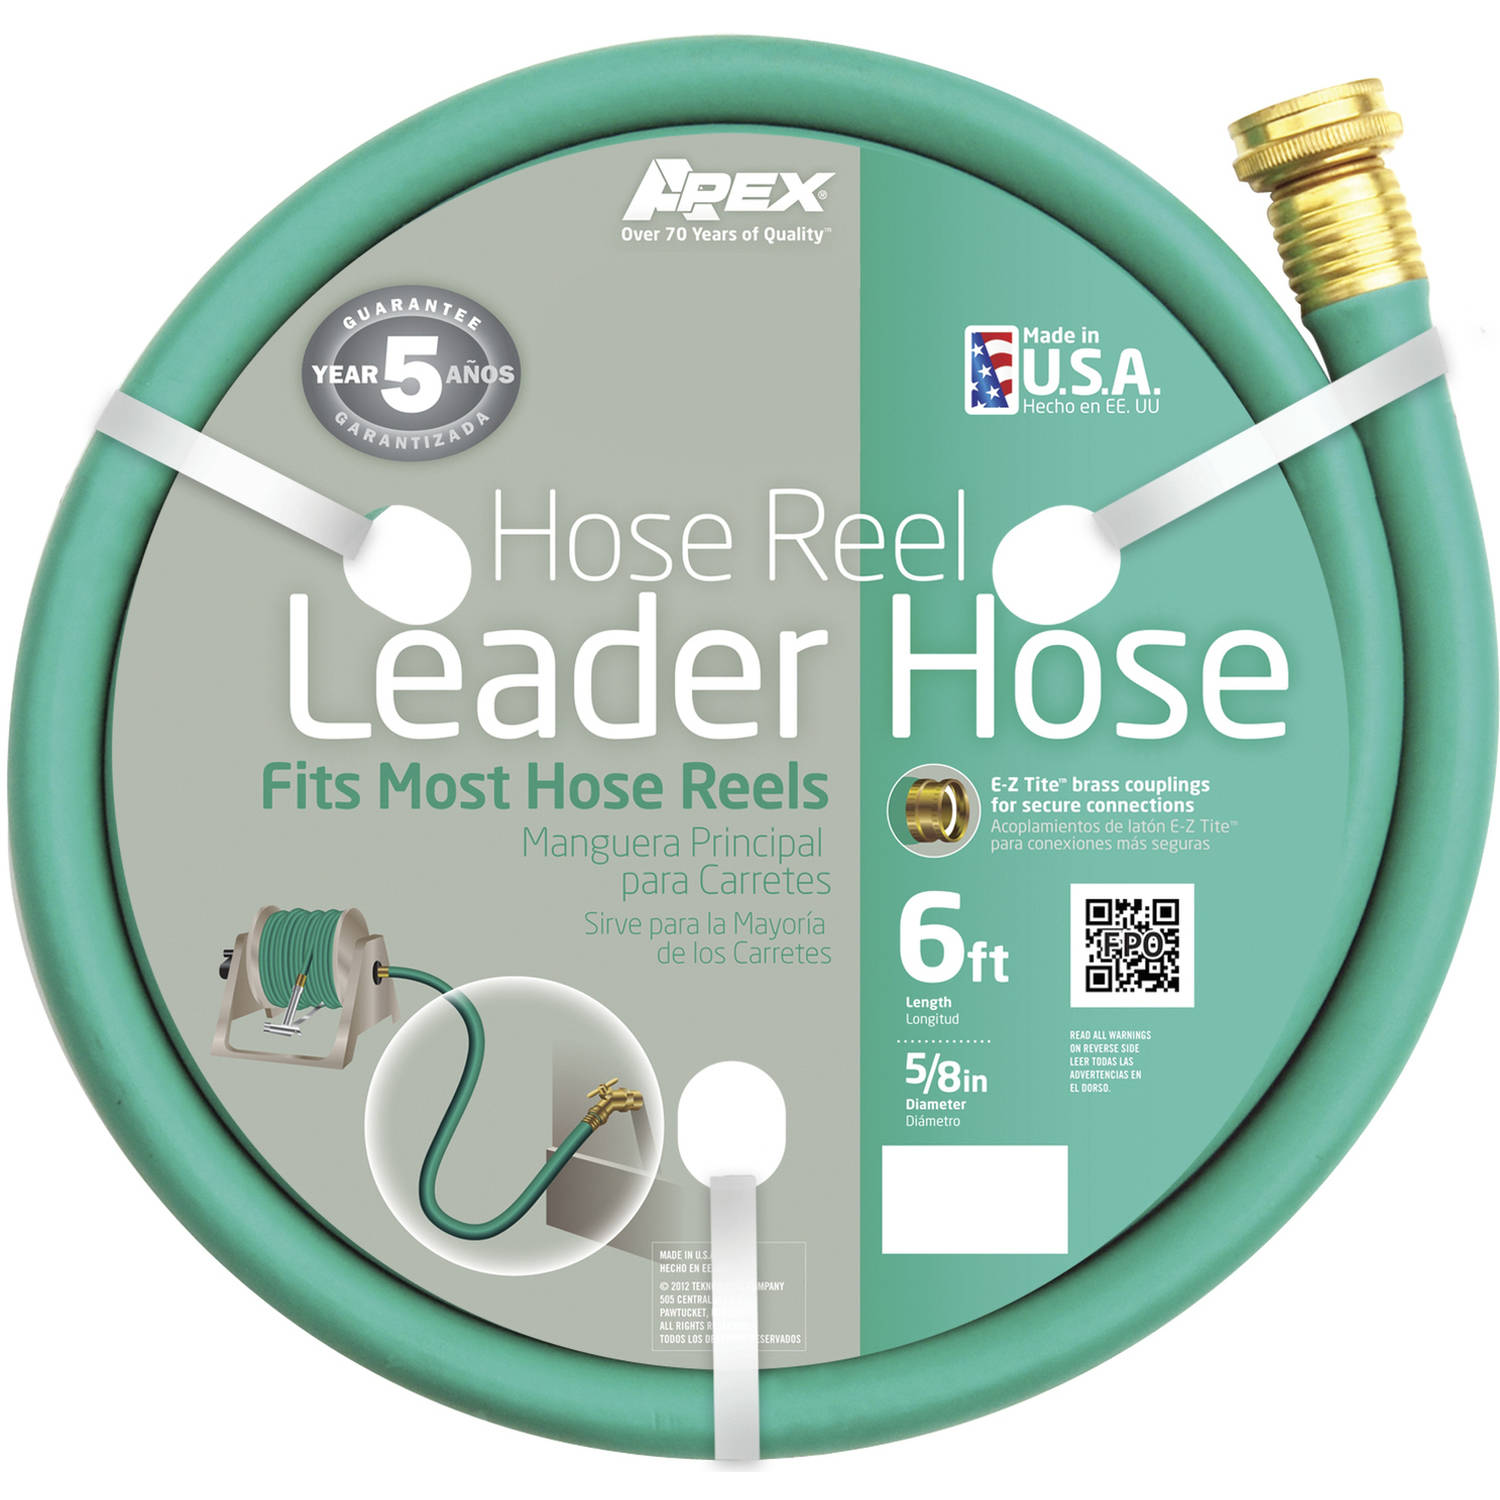 Apex 887-6 6' Hose Reel Leader Hose